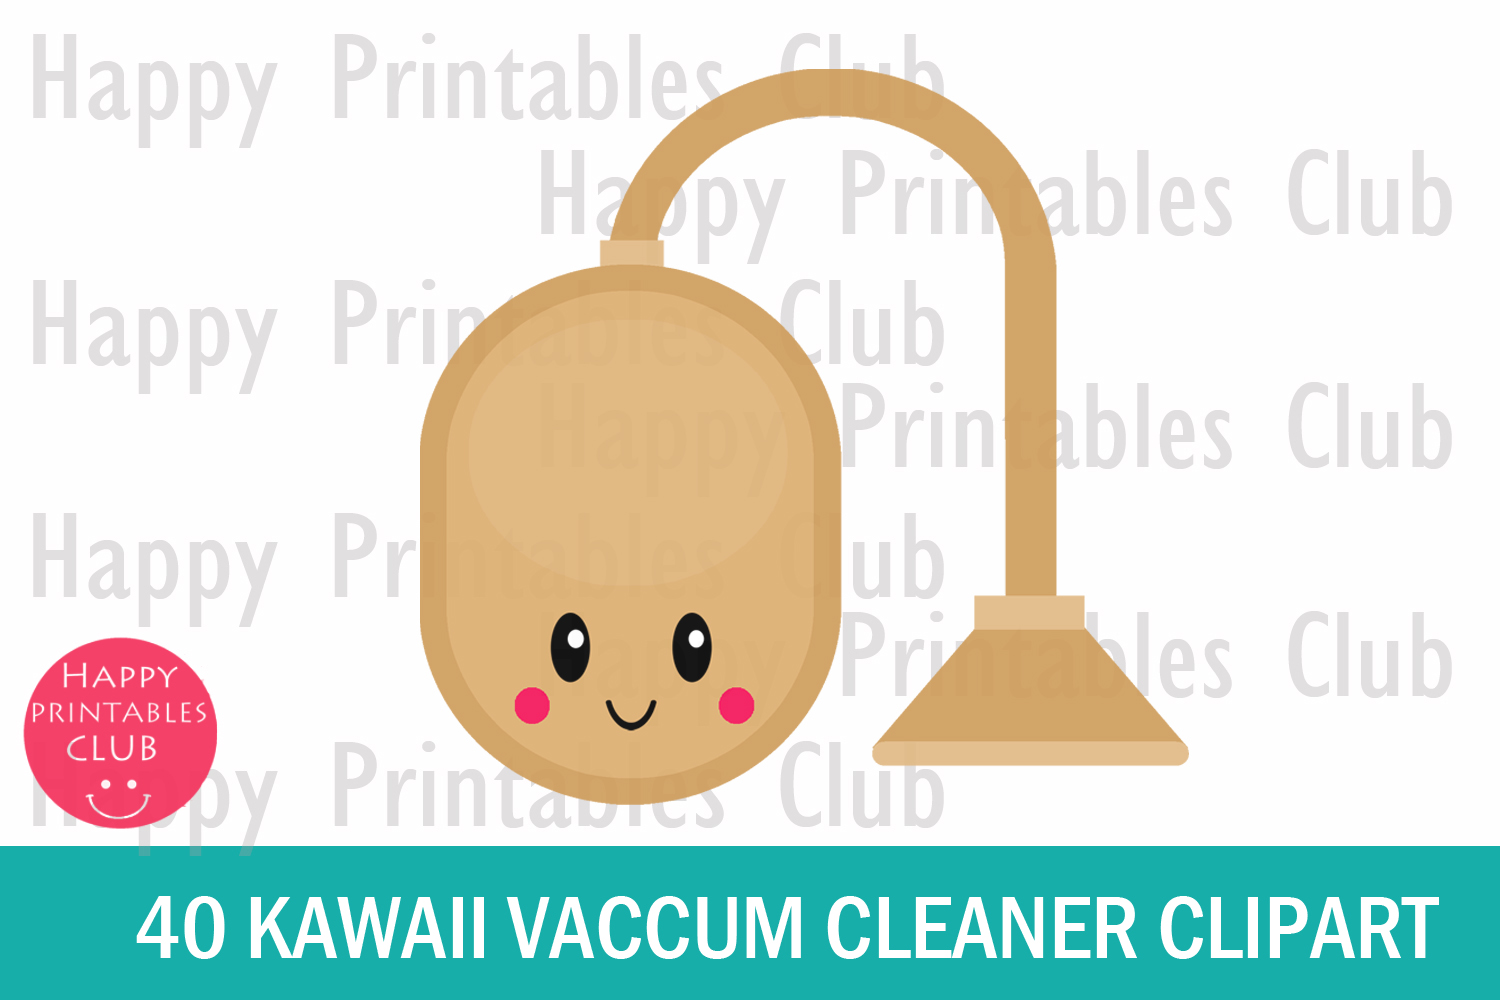 40 Kawaii Vacuum Cleaner Clipart- Vacuum Cleaner Clipart PNG example image 2